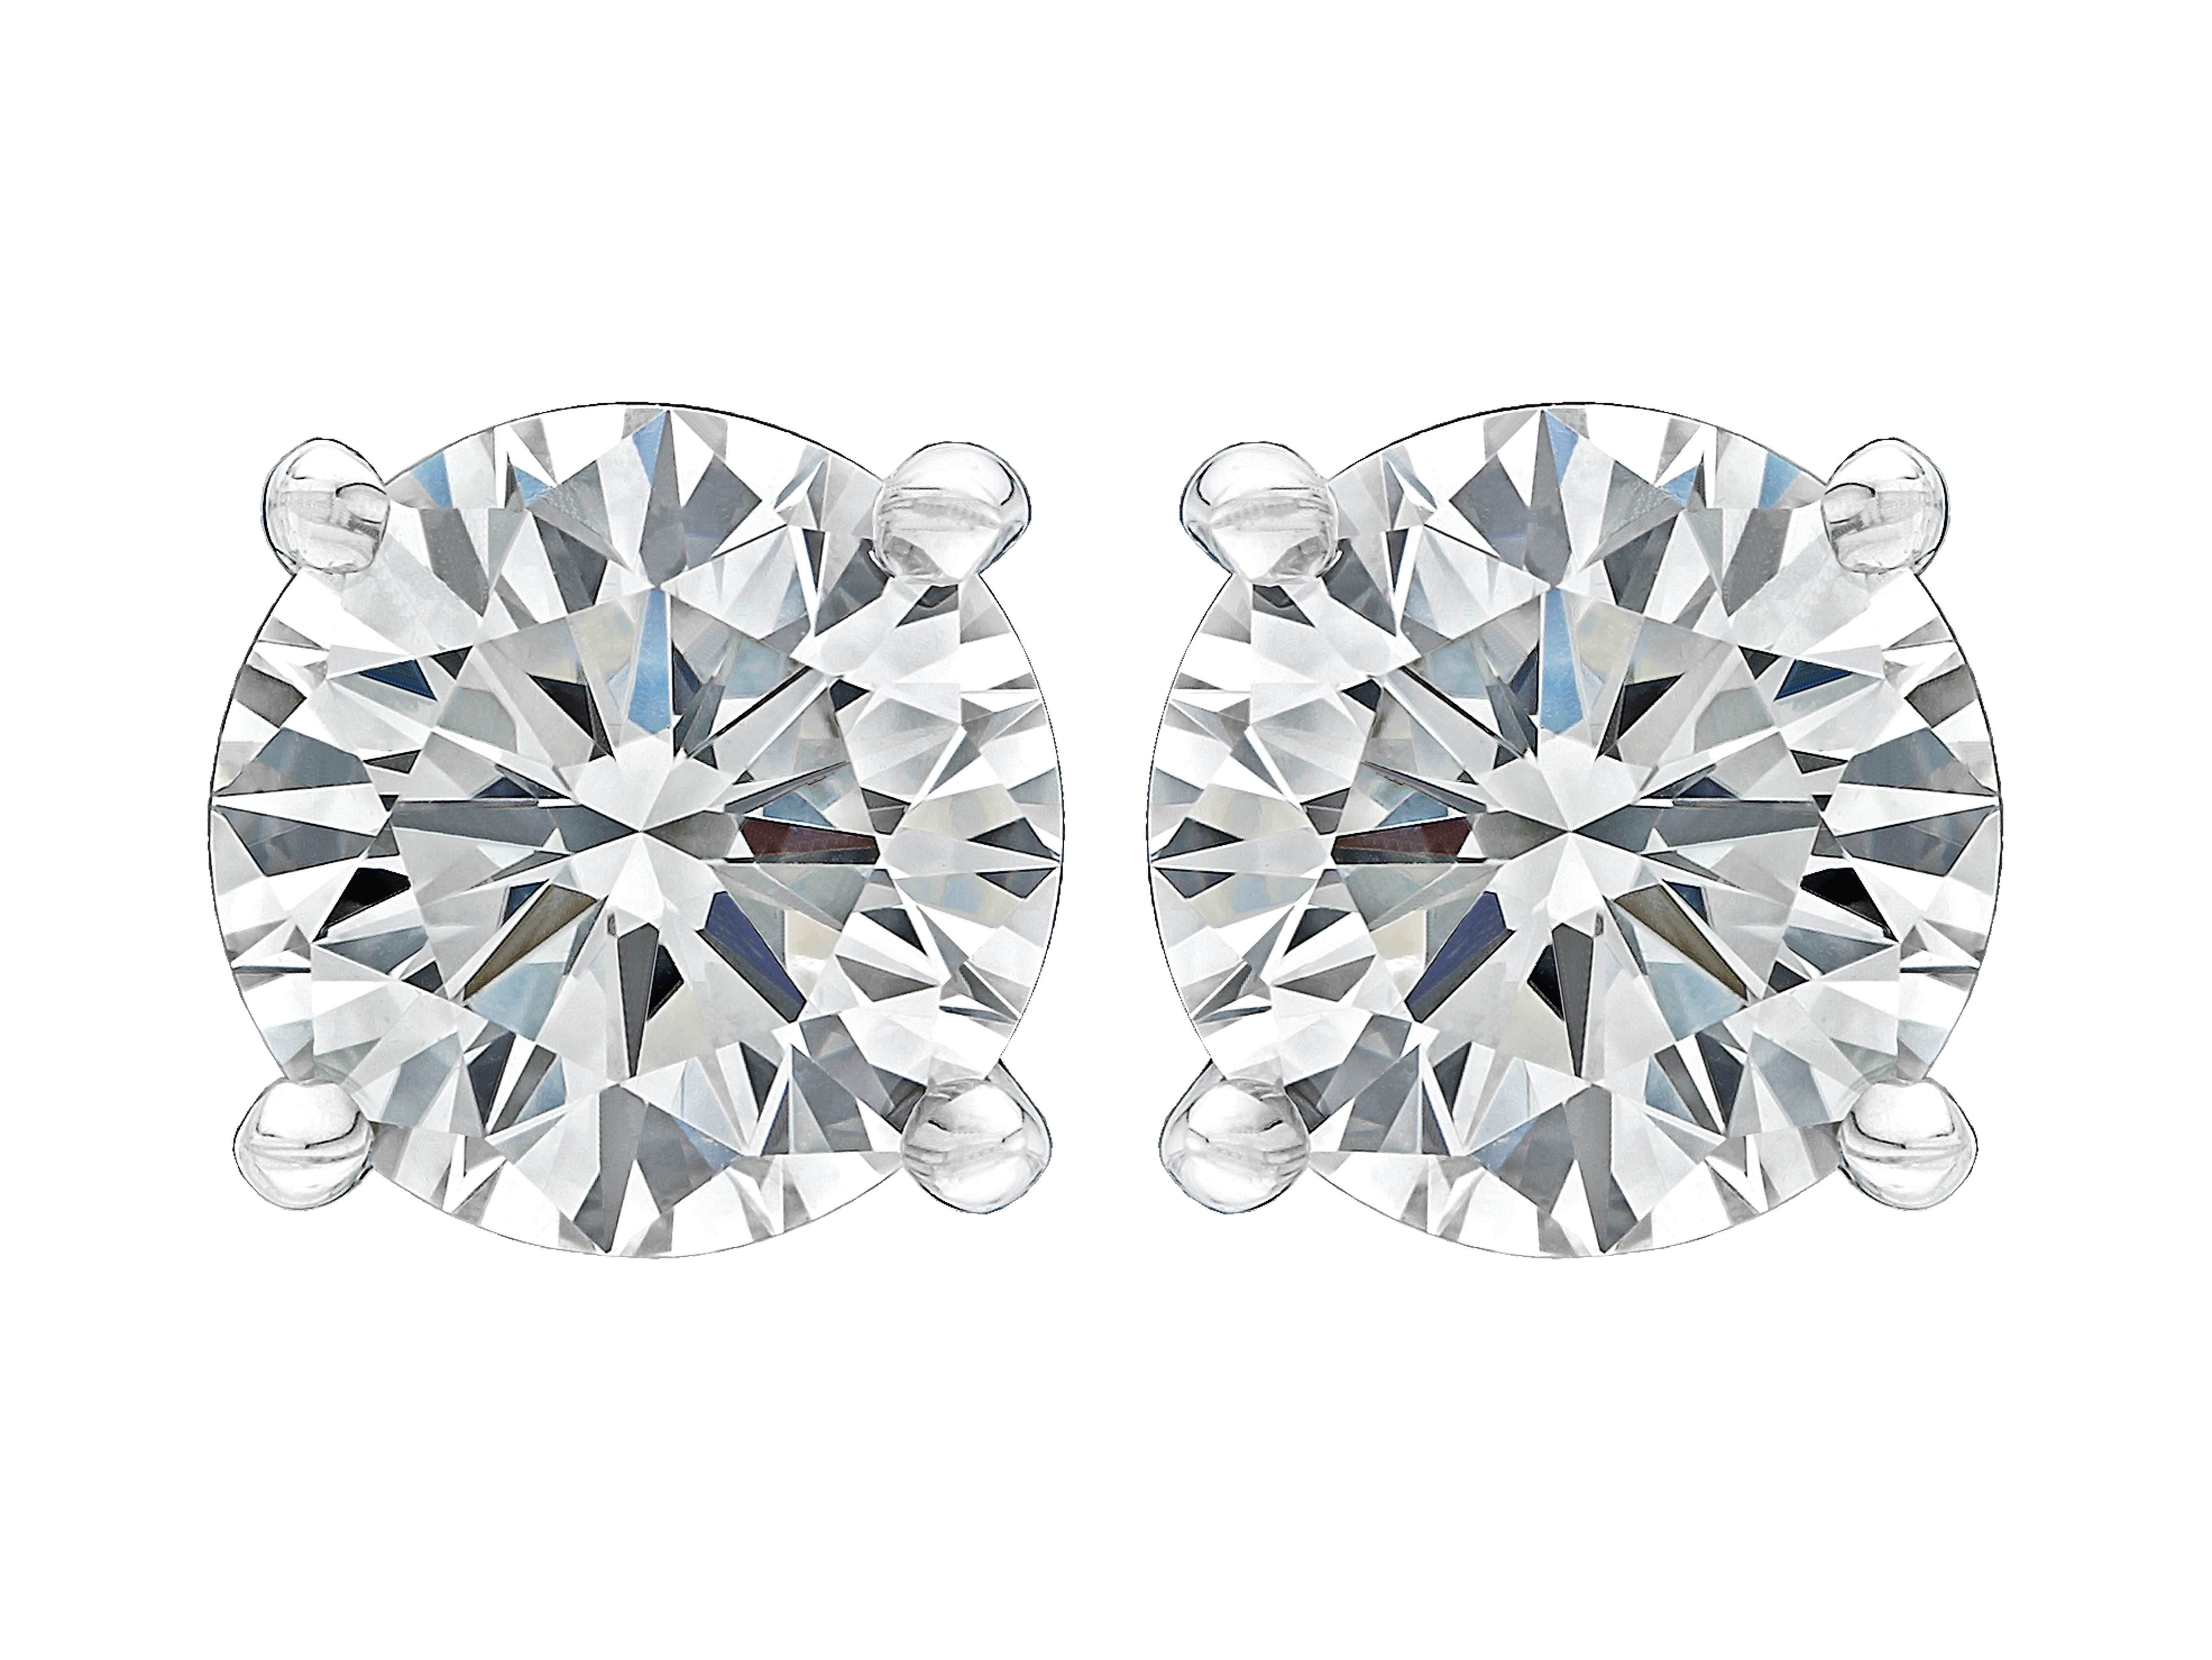 Gordon James Diamond Solitaire Earrings featuring Round Brilliant